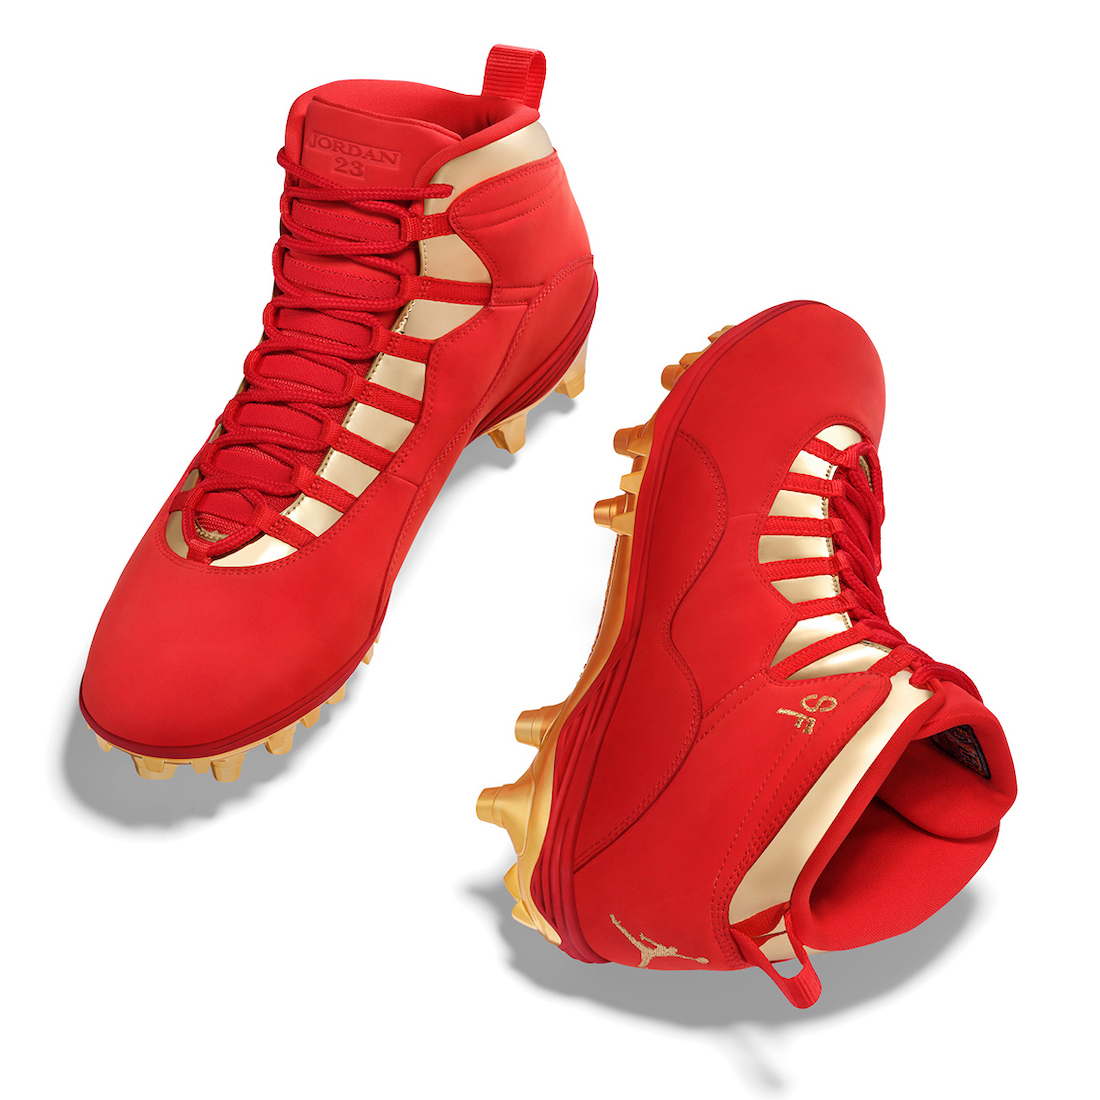 Jimmy Garrapolo Air Jordan 10 NFL 2020 PE Cleats